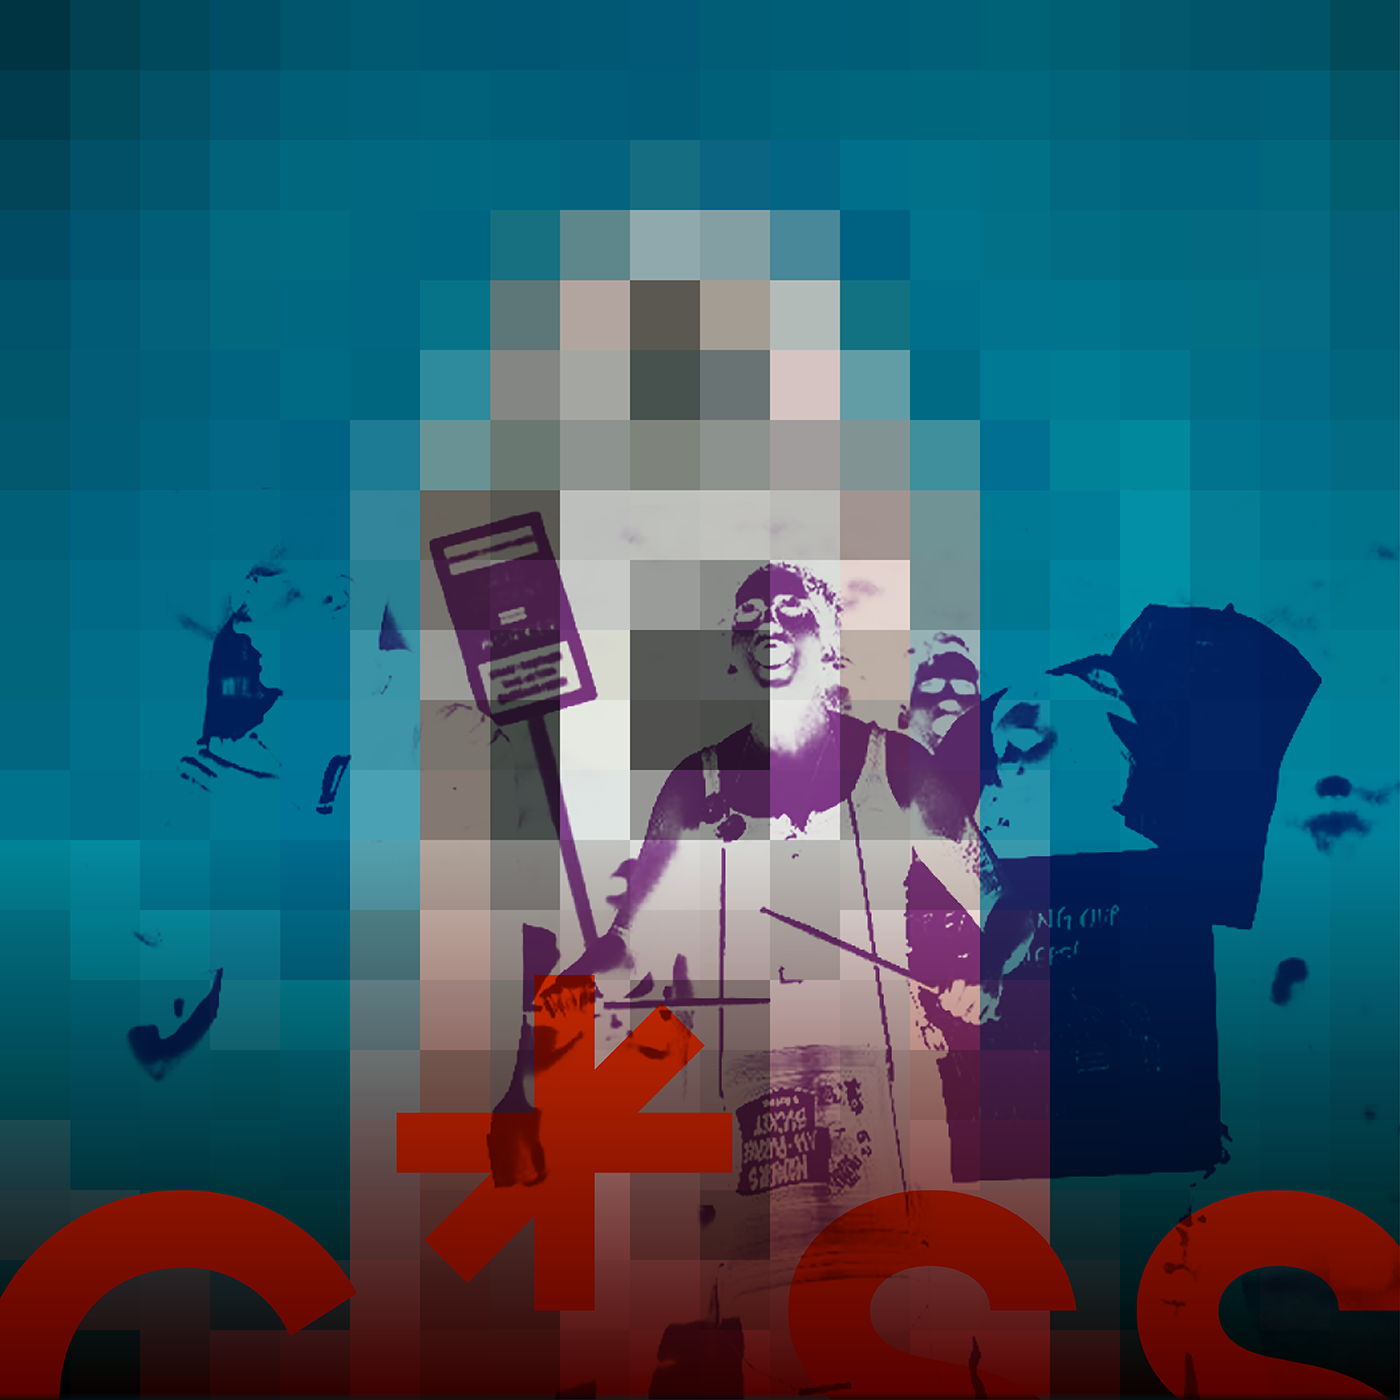 pixelated graphic of people holding a sign and shouting